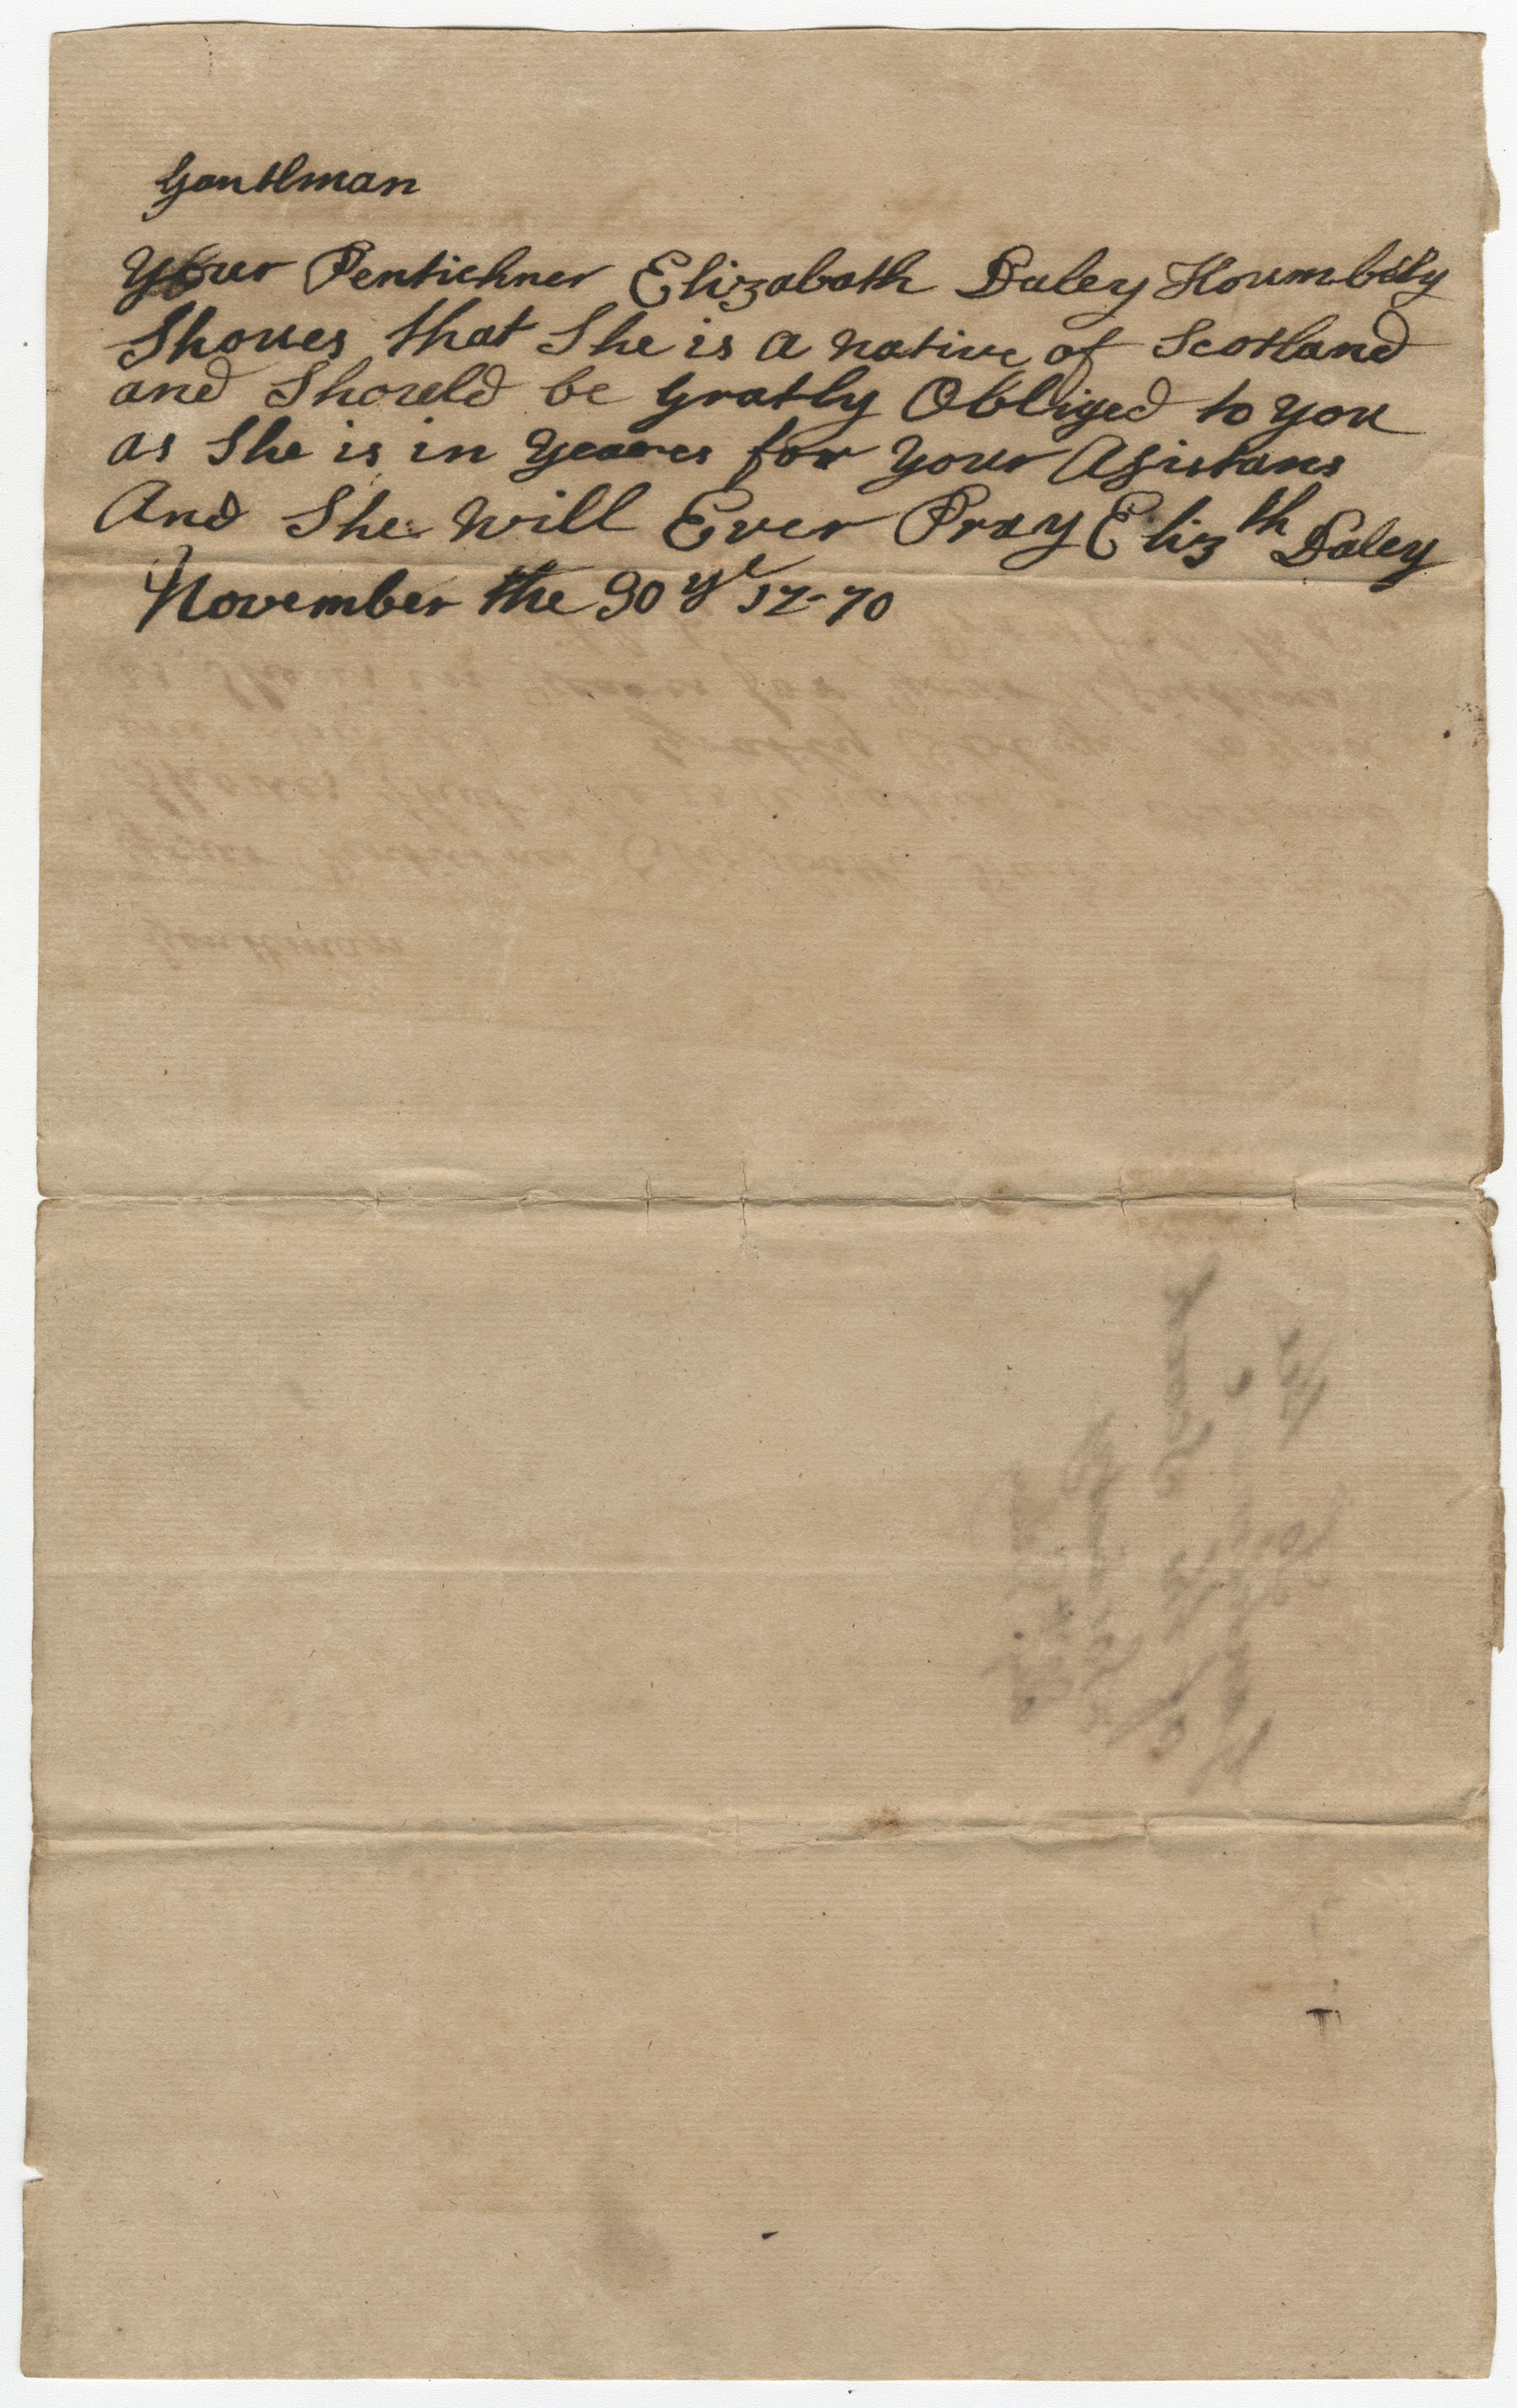 Petition from Elizabeth Daley to the St. Andrew's Society